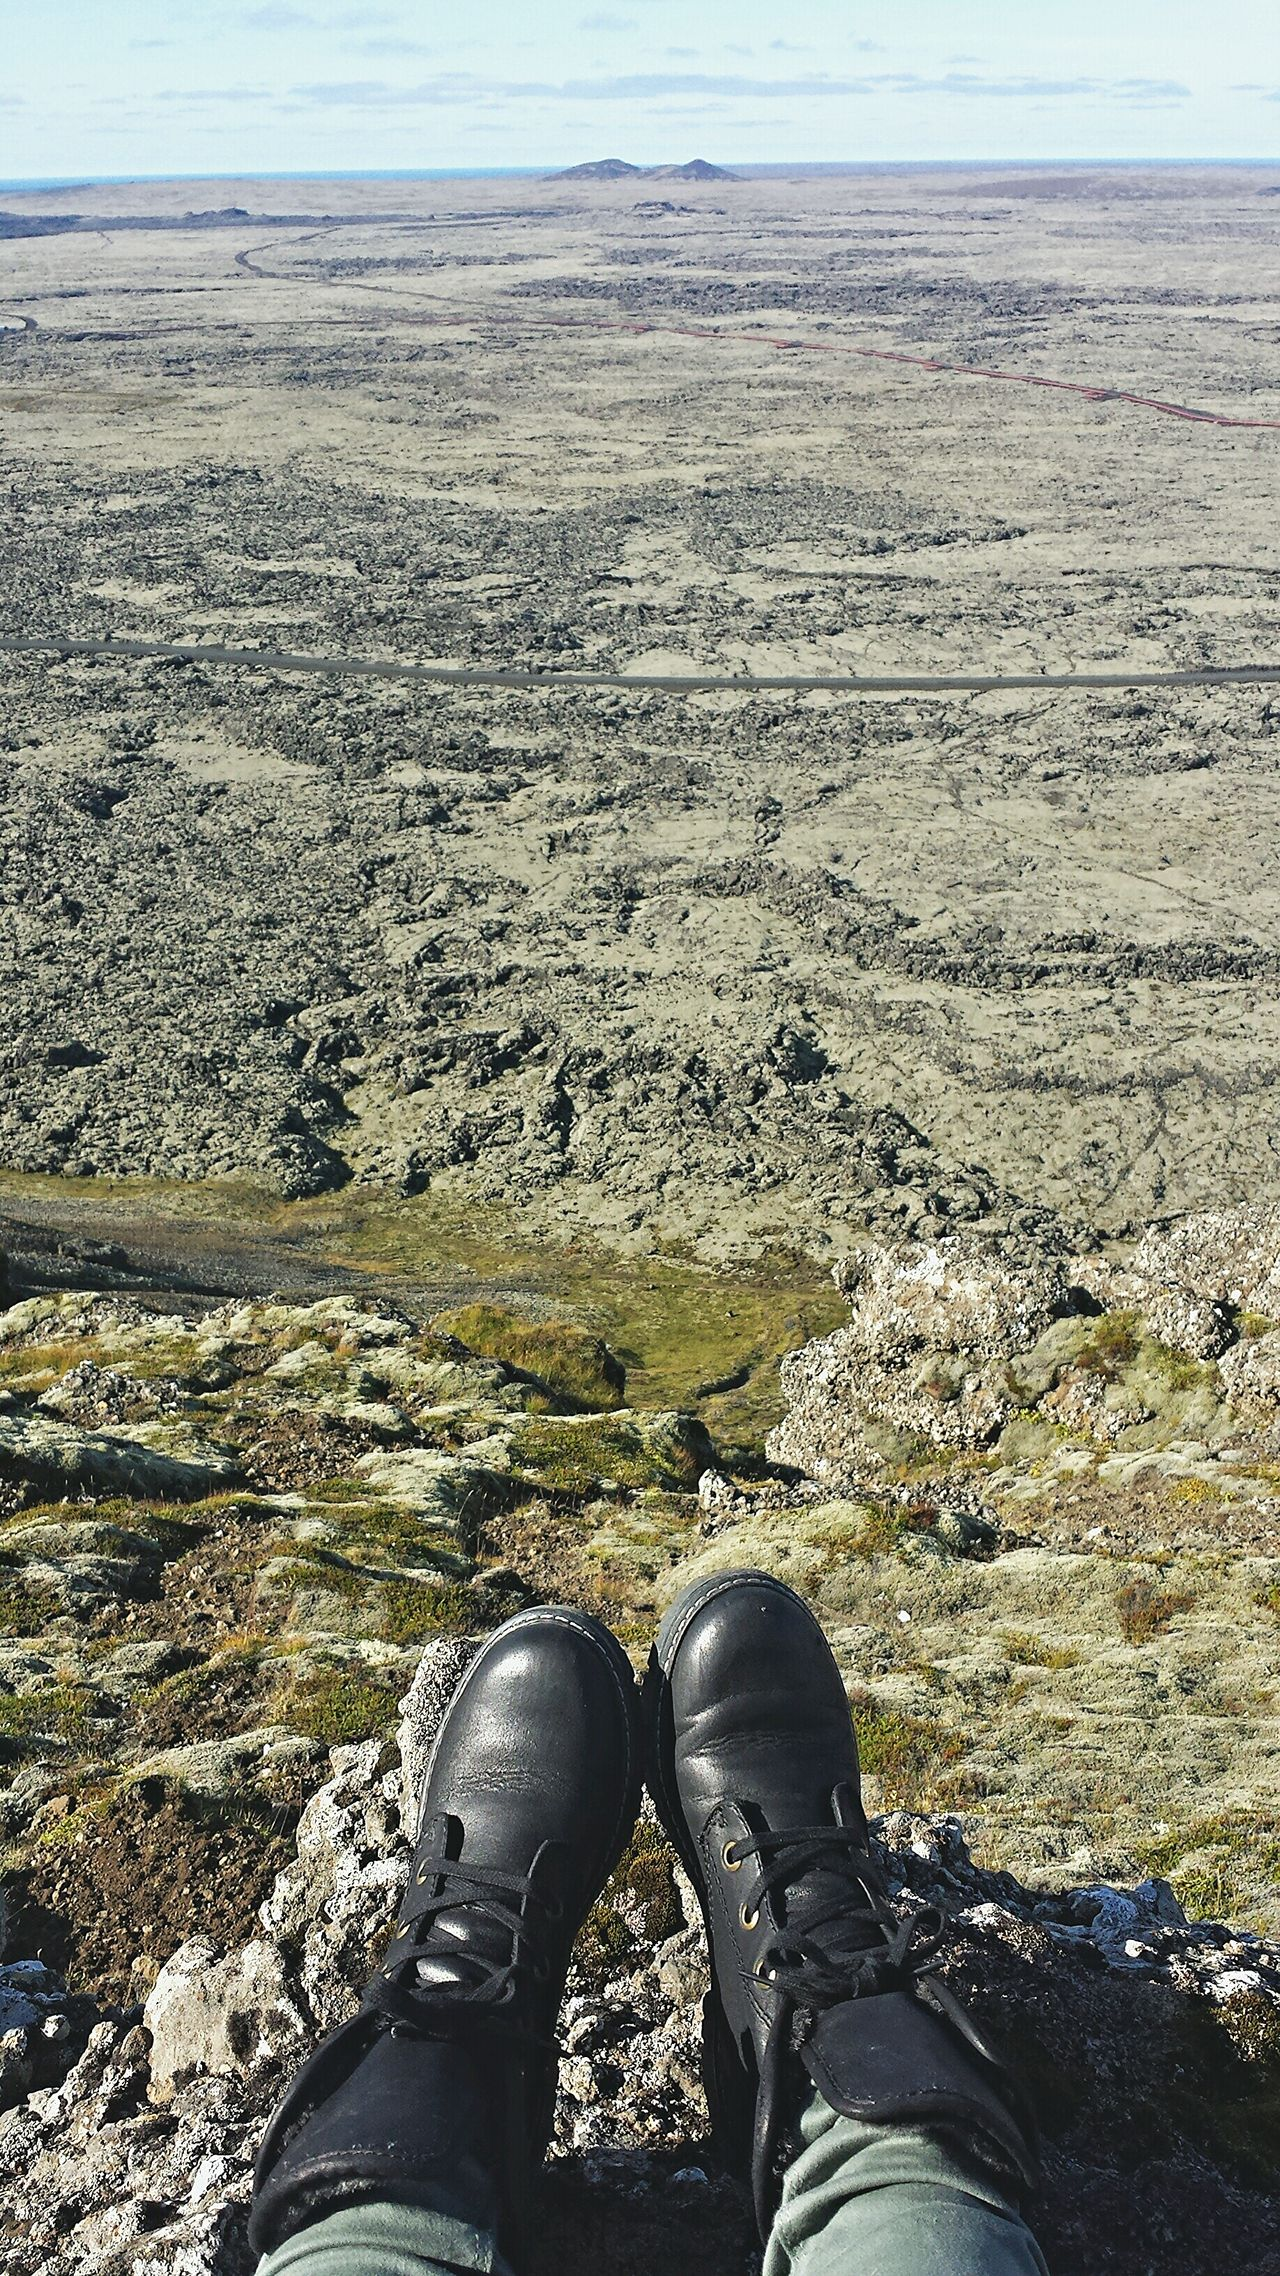 I'm on top of the world 🙌 Iceland Hiking Volcano On Another Planet  Traveling Adventure My Shoes Track Every Step Perspectives Mobile Photography What I Value